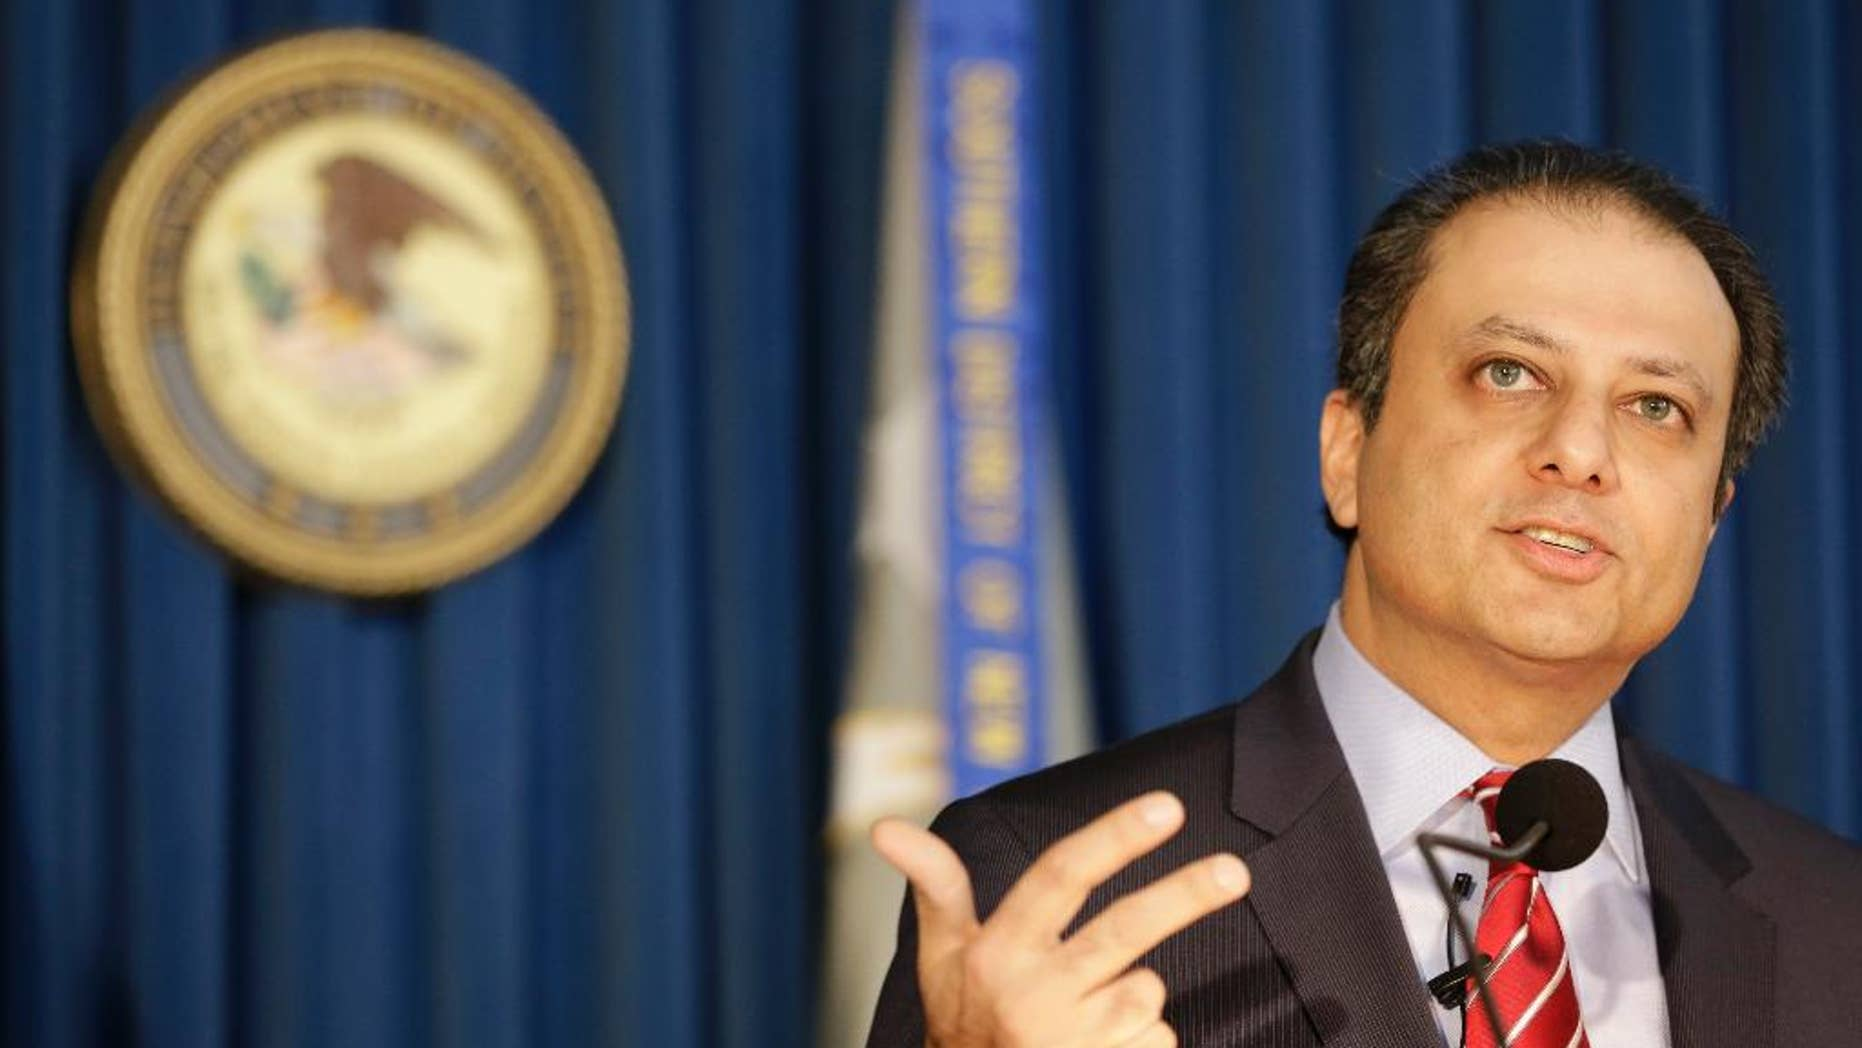 FILE - In this Jan. 22, 2015 file photo, U.S. Attorney Preet Bharara addresses members of the media during a news conference,  in New York.  Bharara and his team in the Manhattan U.S. Attorney's Office have suffered some major setbacks in recent months of a kind not seen since he arrived on the job nearly six years ago. (AP Photo/Mary Altaffer, File )